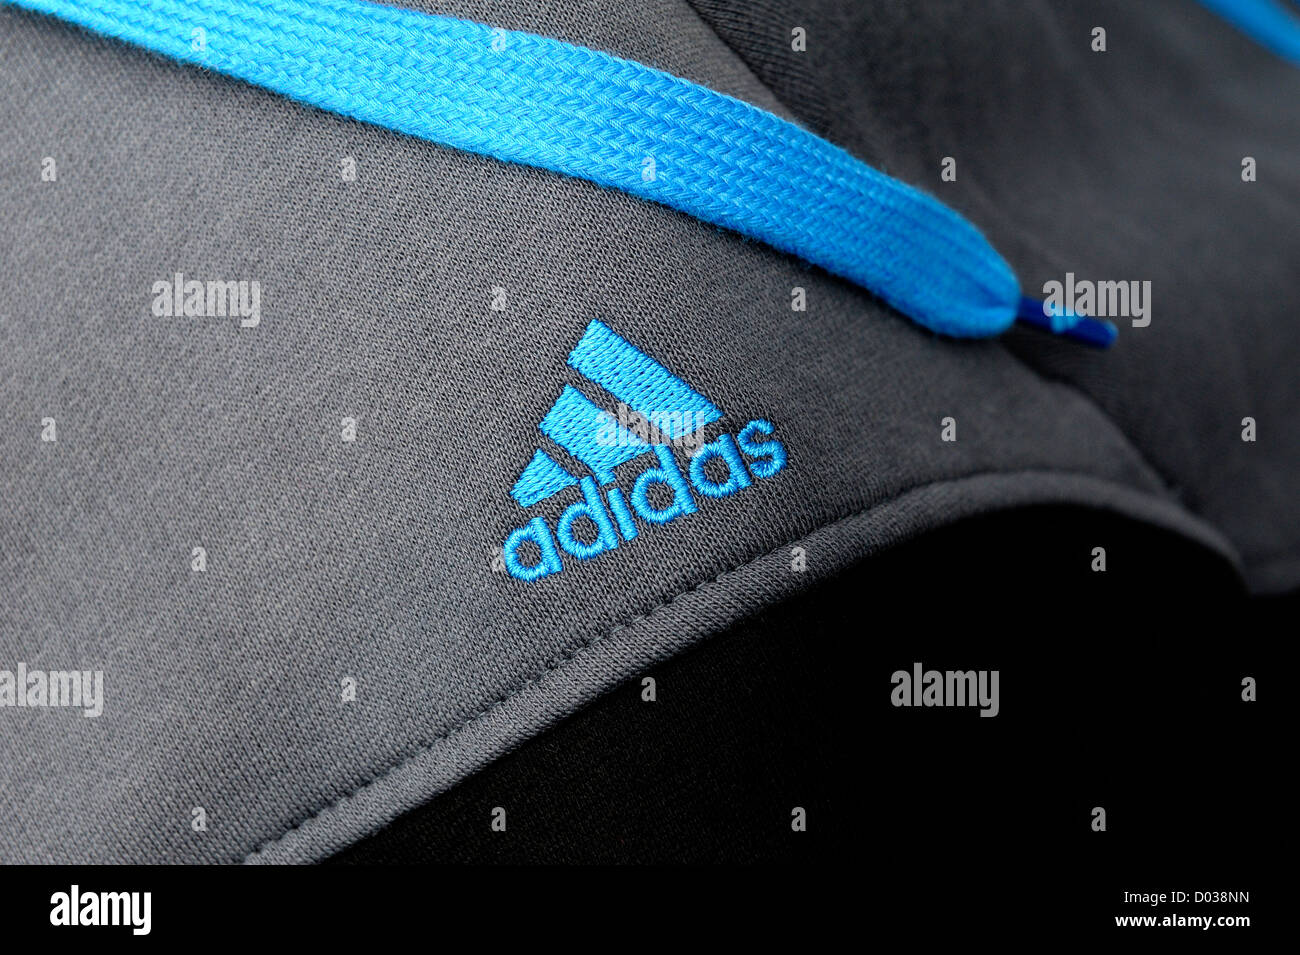 Adidas logo in blue stitched onto a tracksuit top - Stock Image